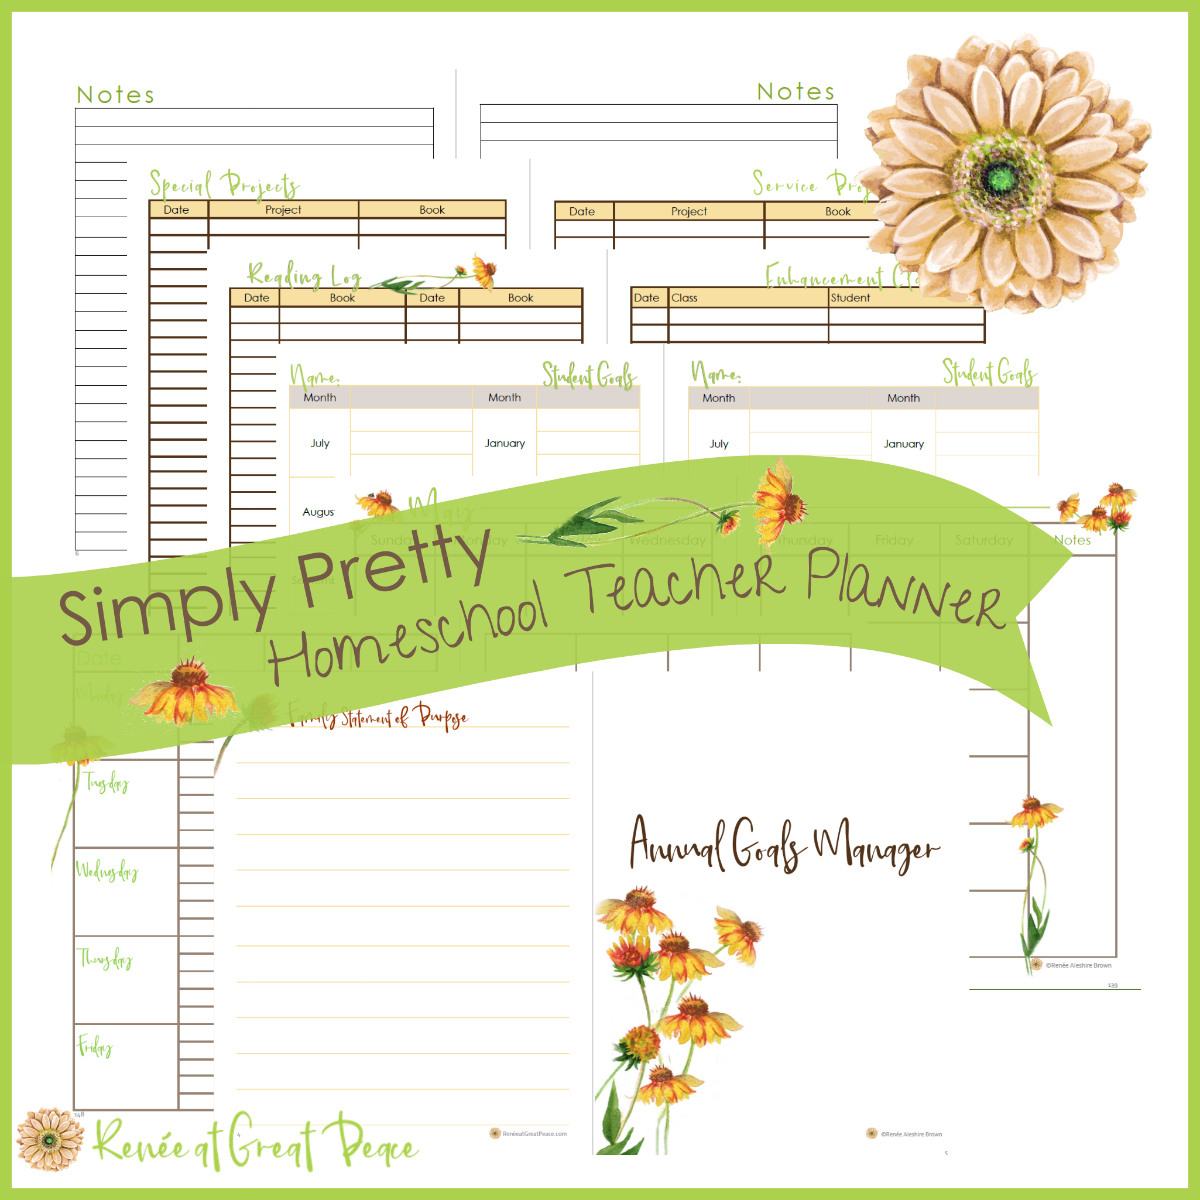 Get Your Free homeschool Teacher Planner | Renée at Great Peace #ihsnet #homeschool